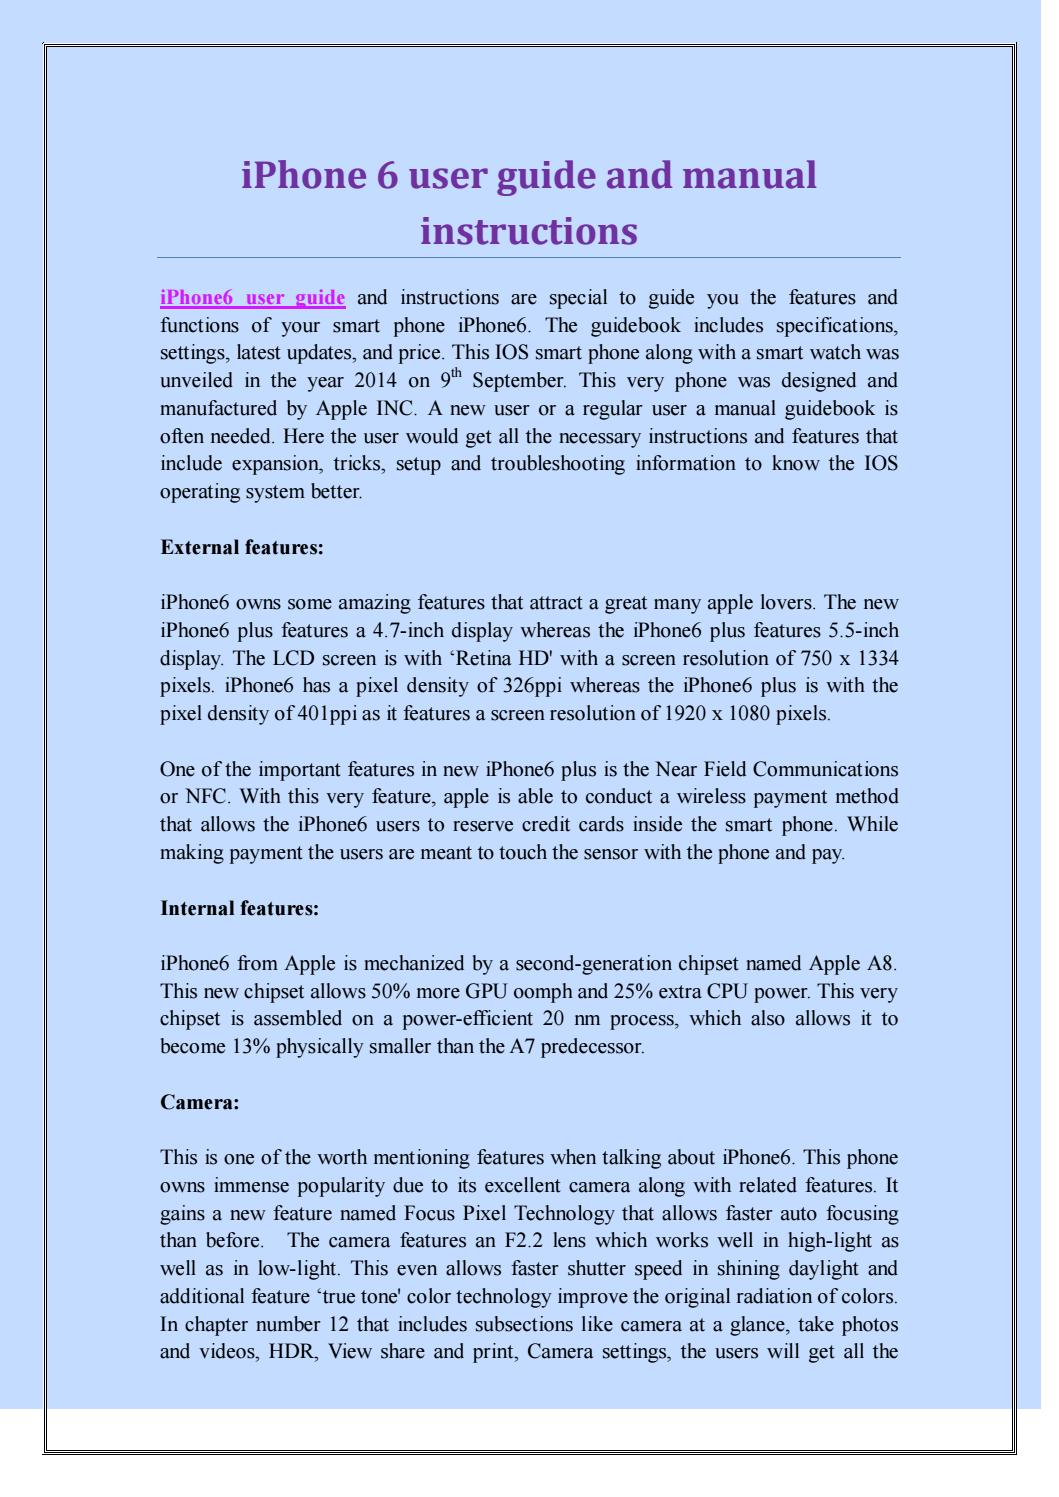 Iphone 6 User Guide And Manual Instructions By Iphone6 User Guide